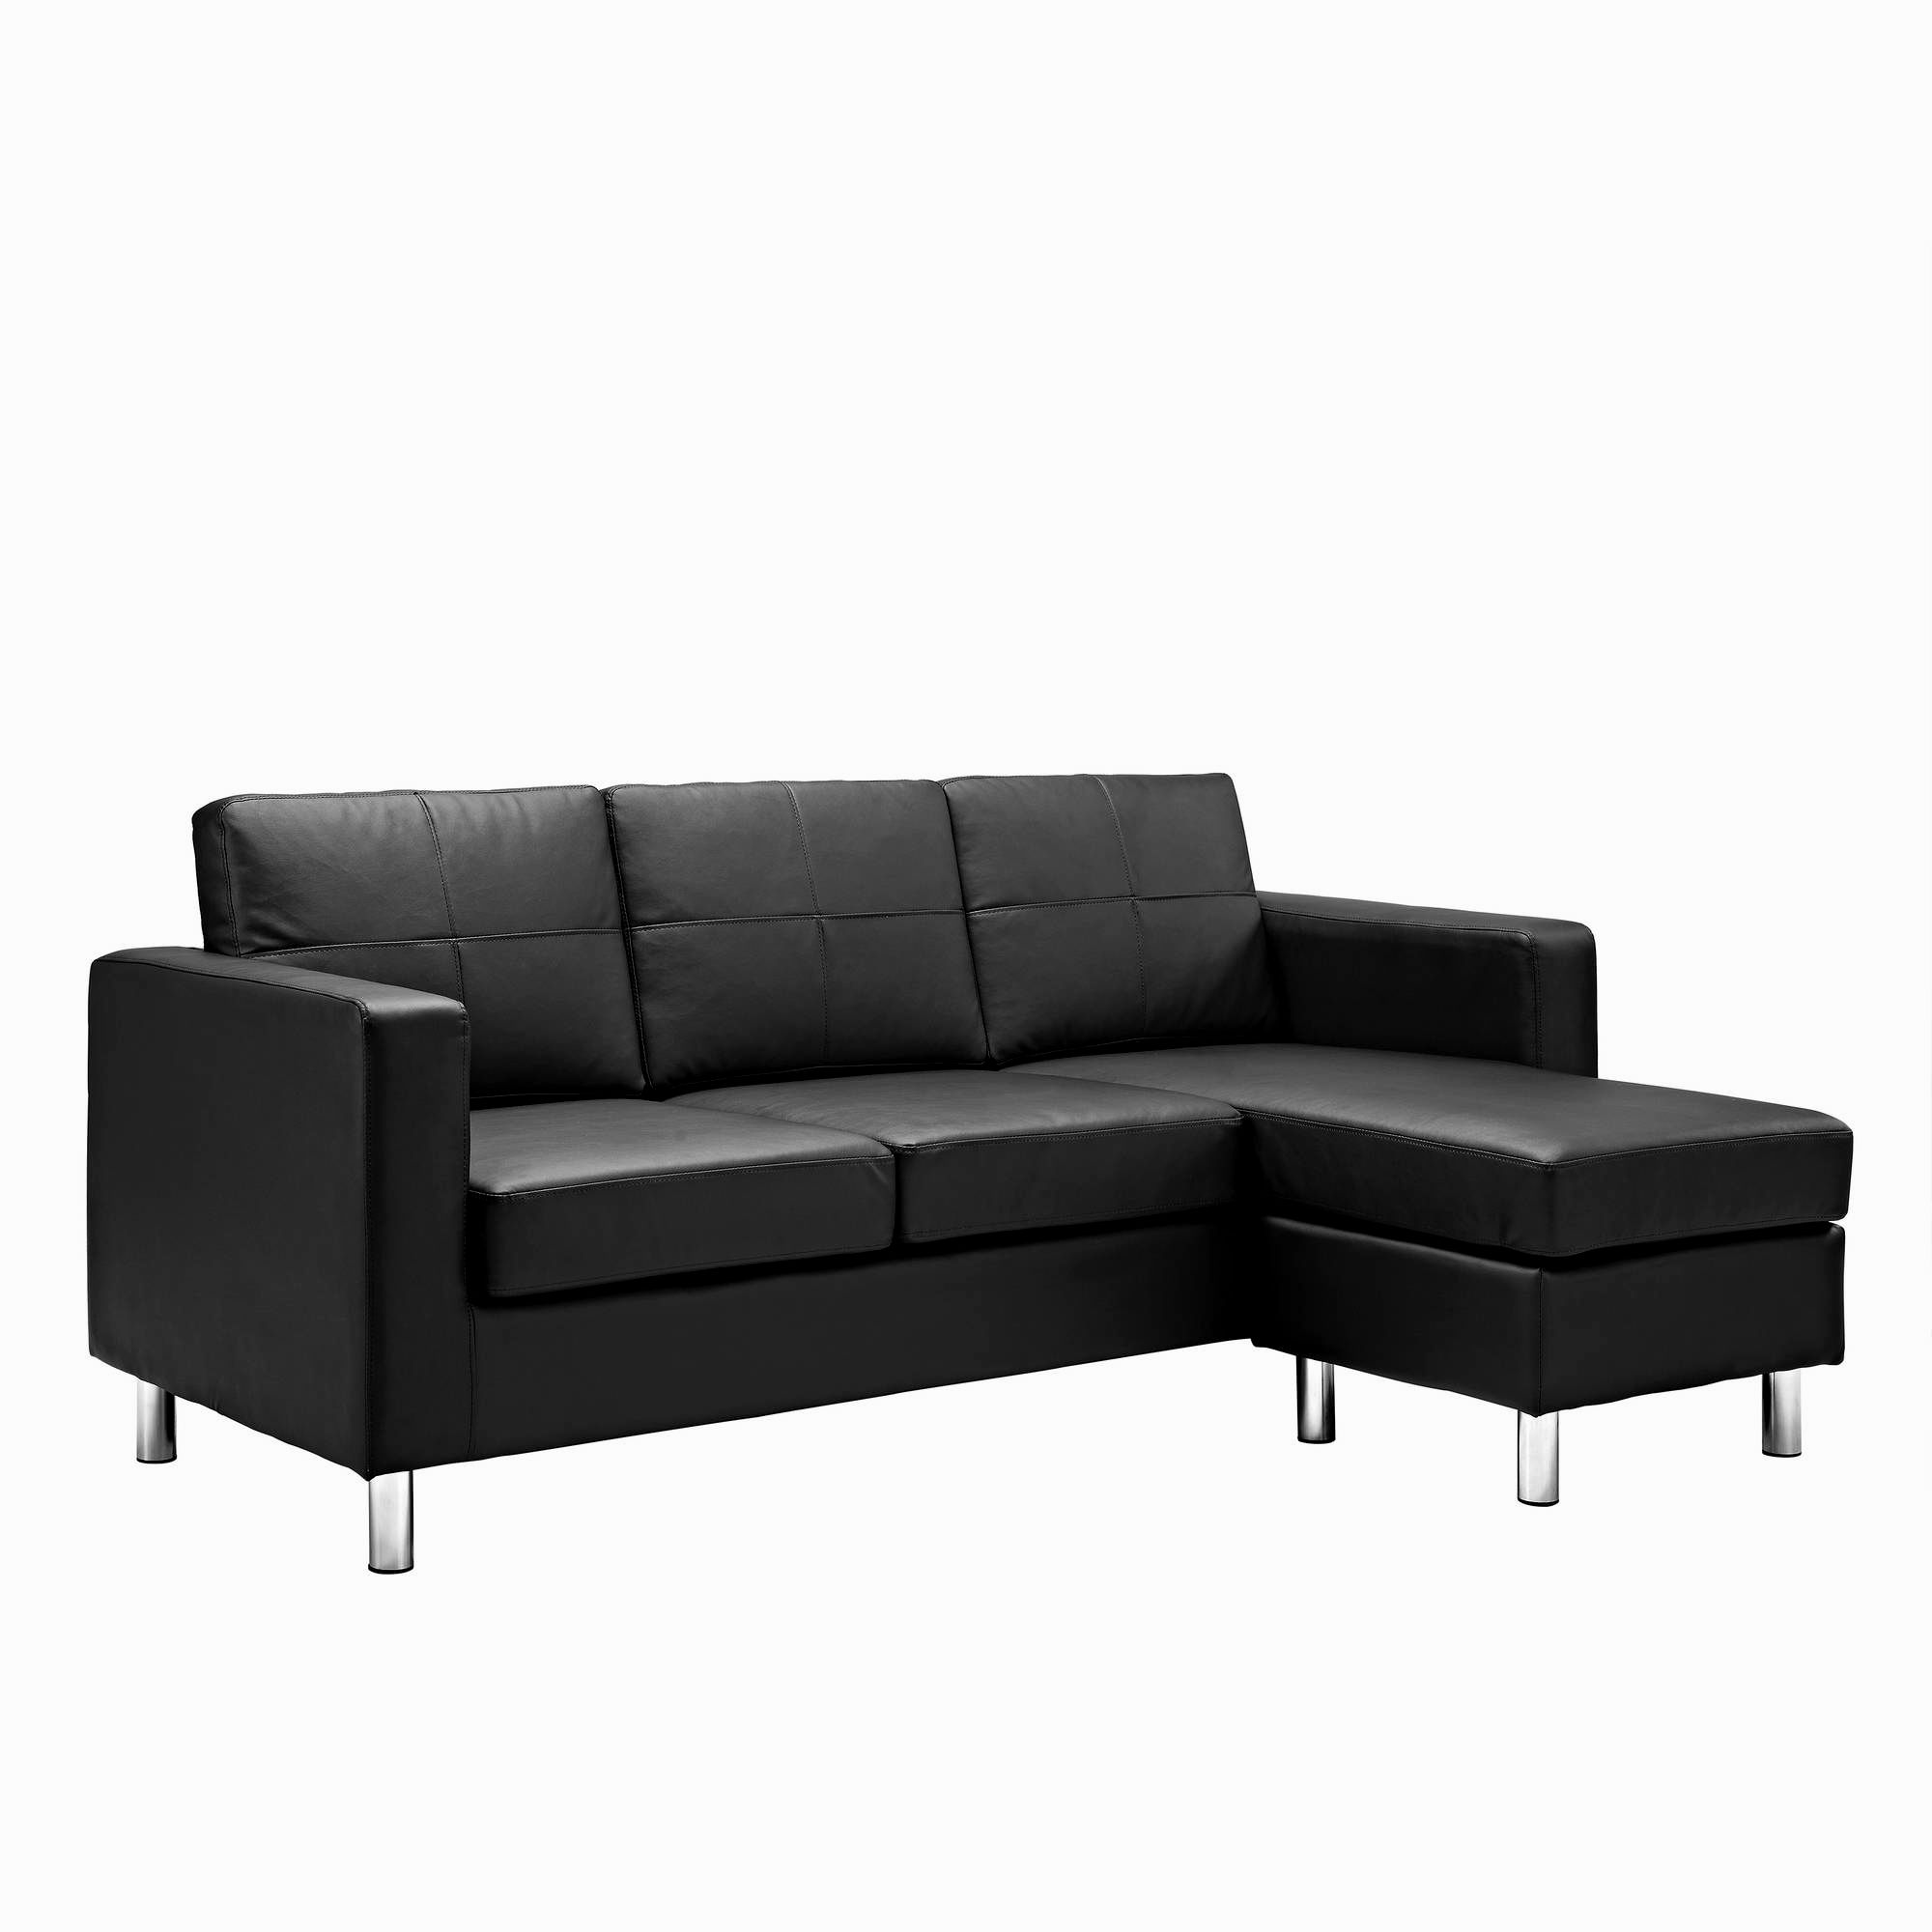 excellent small sectional sofas image-Luxury Small Sectional sofas Plan